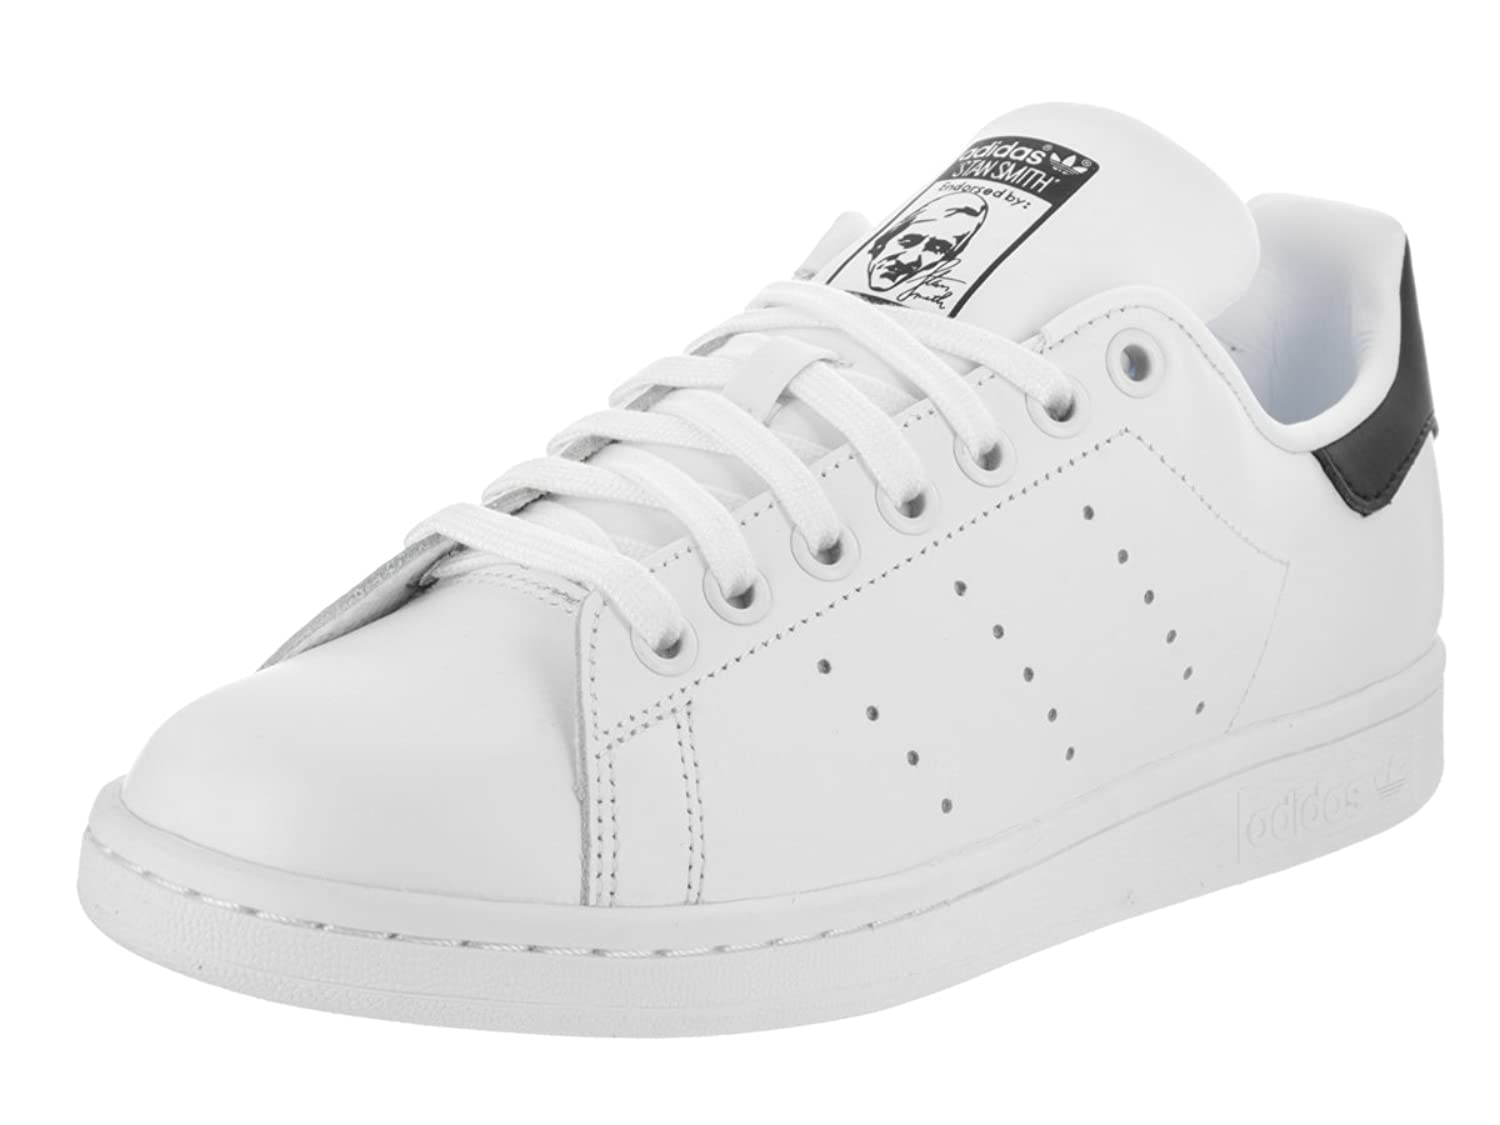 Stan Smith W Ladies in White/Black by Adidas